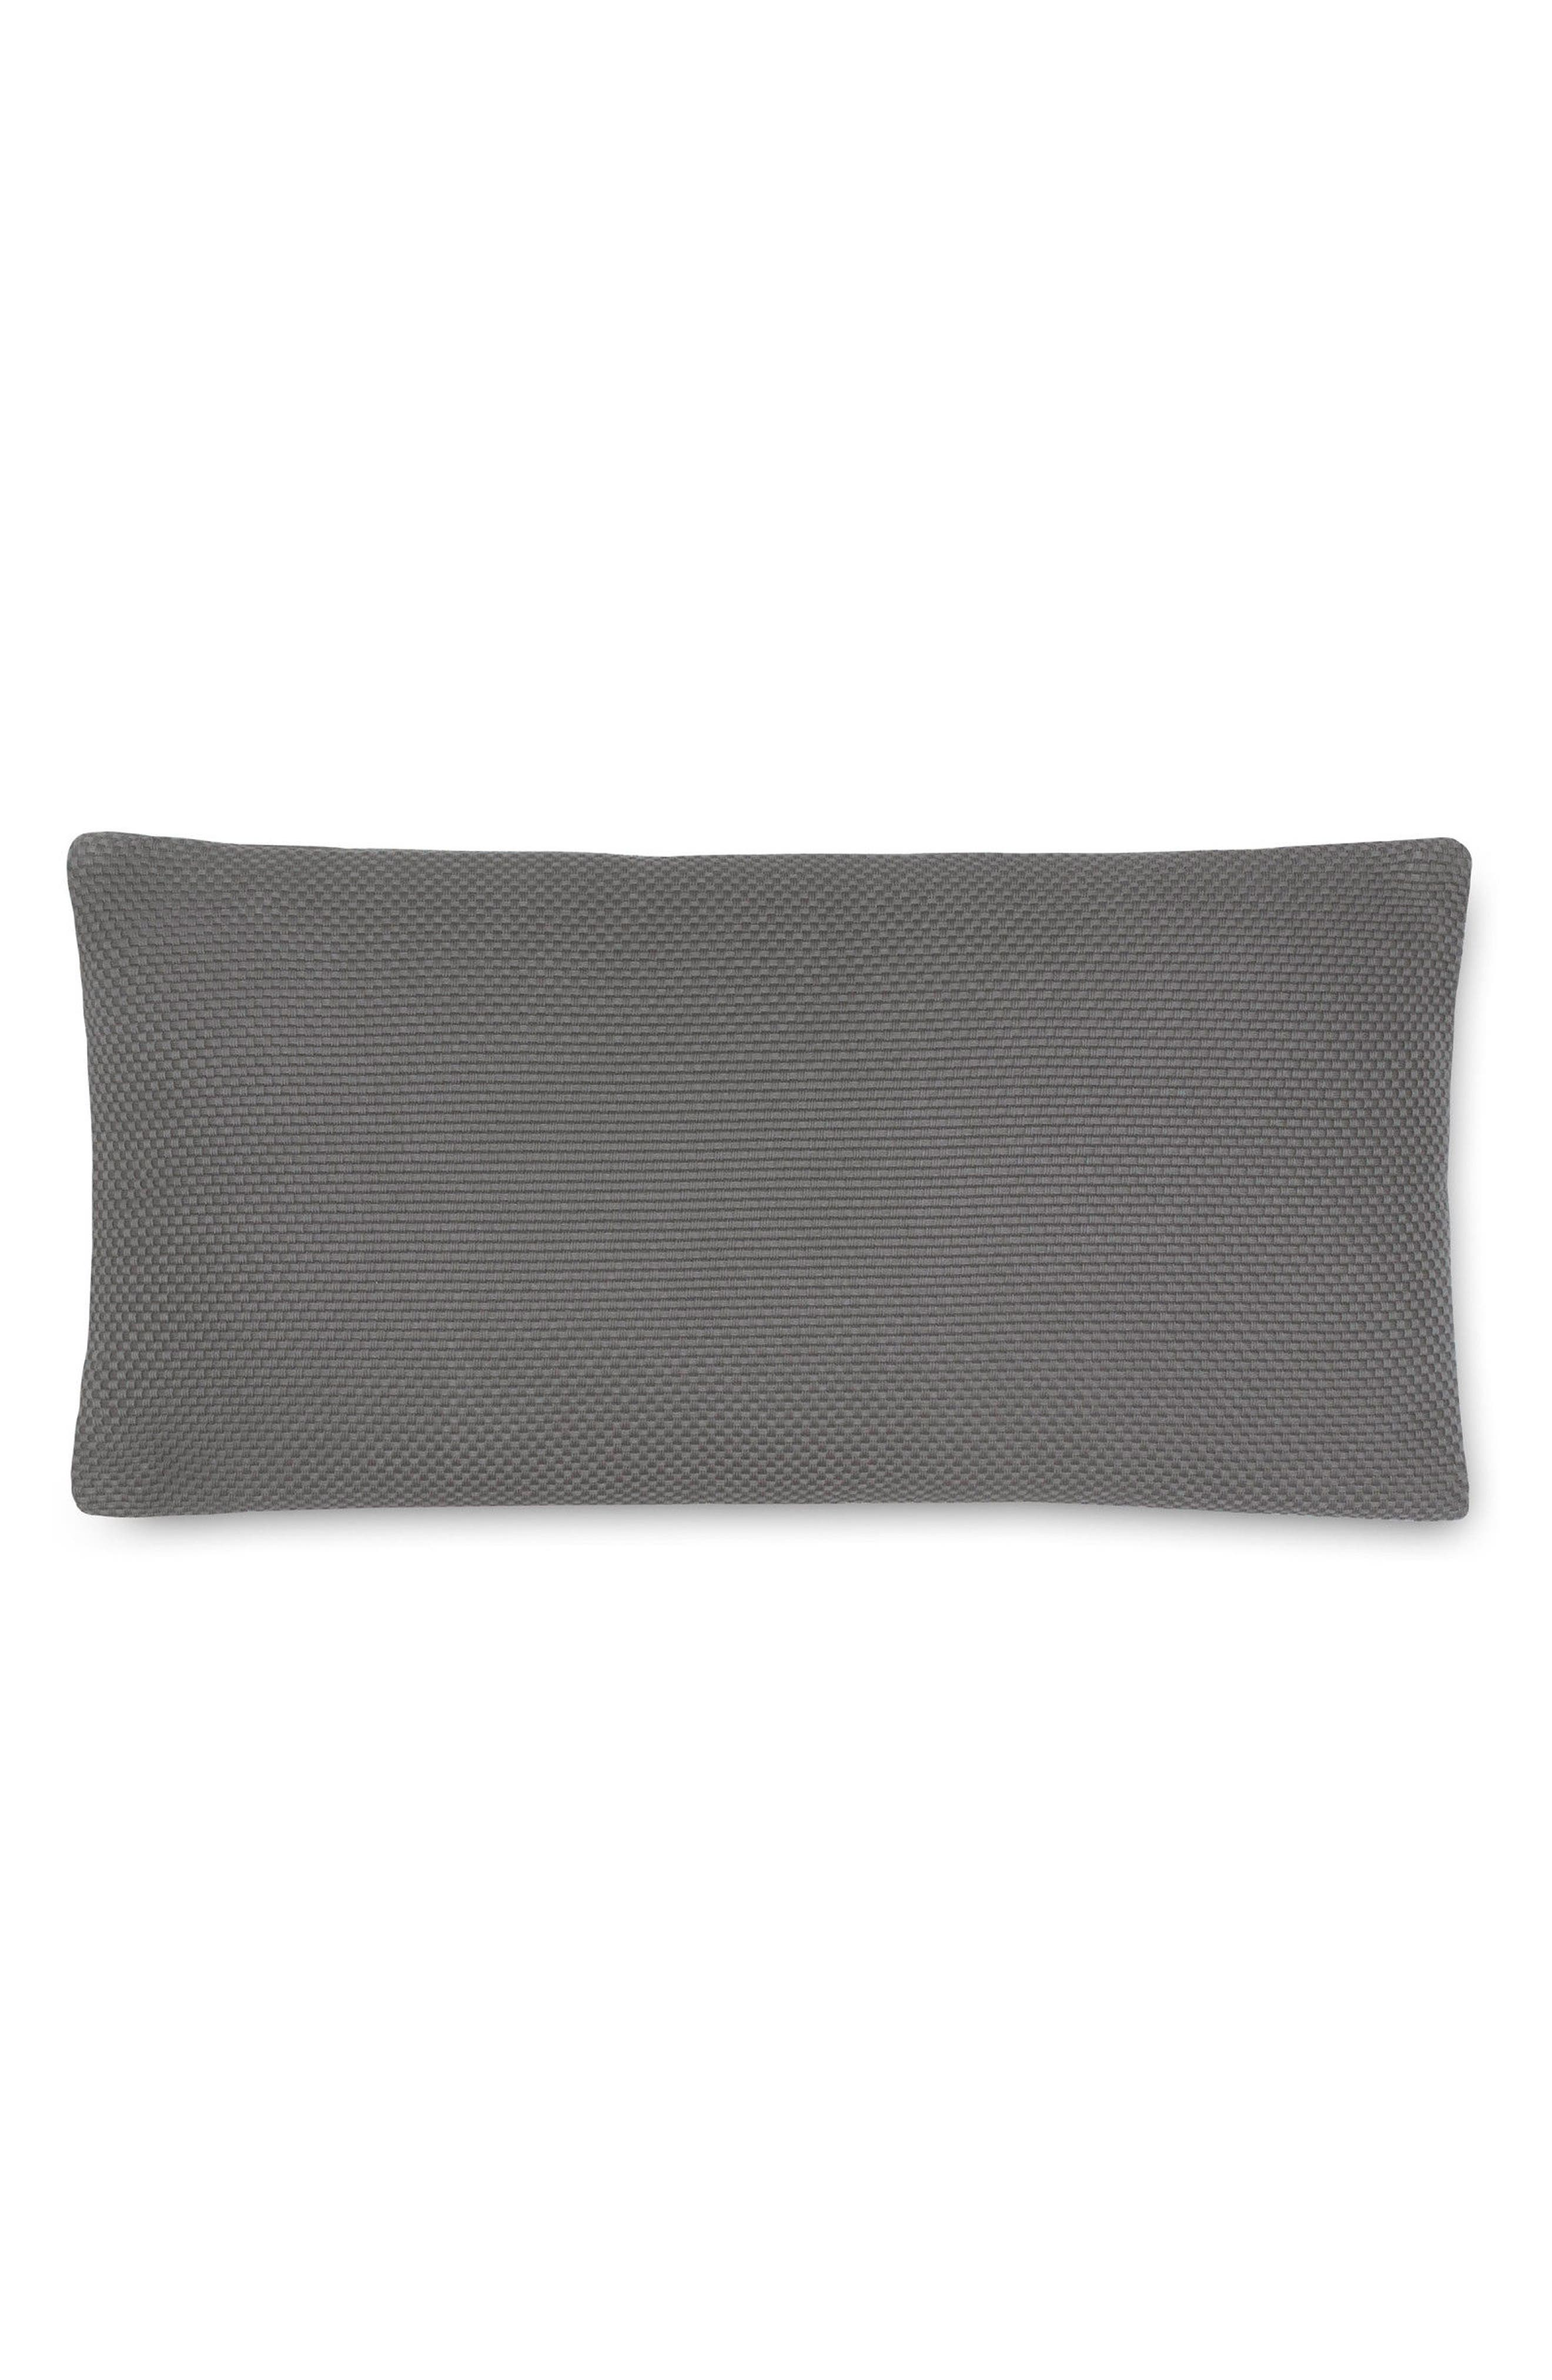 Main Image - Portico Denizen Accent Pillow